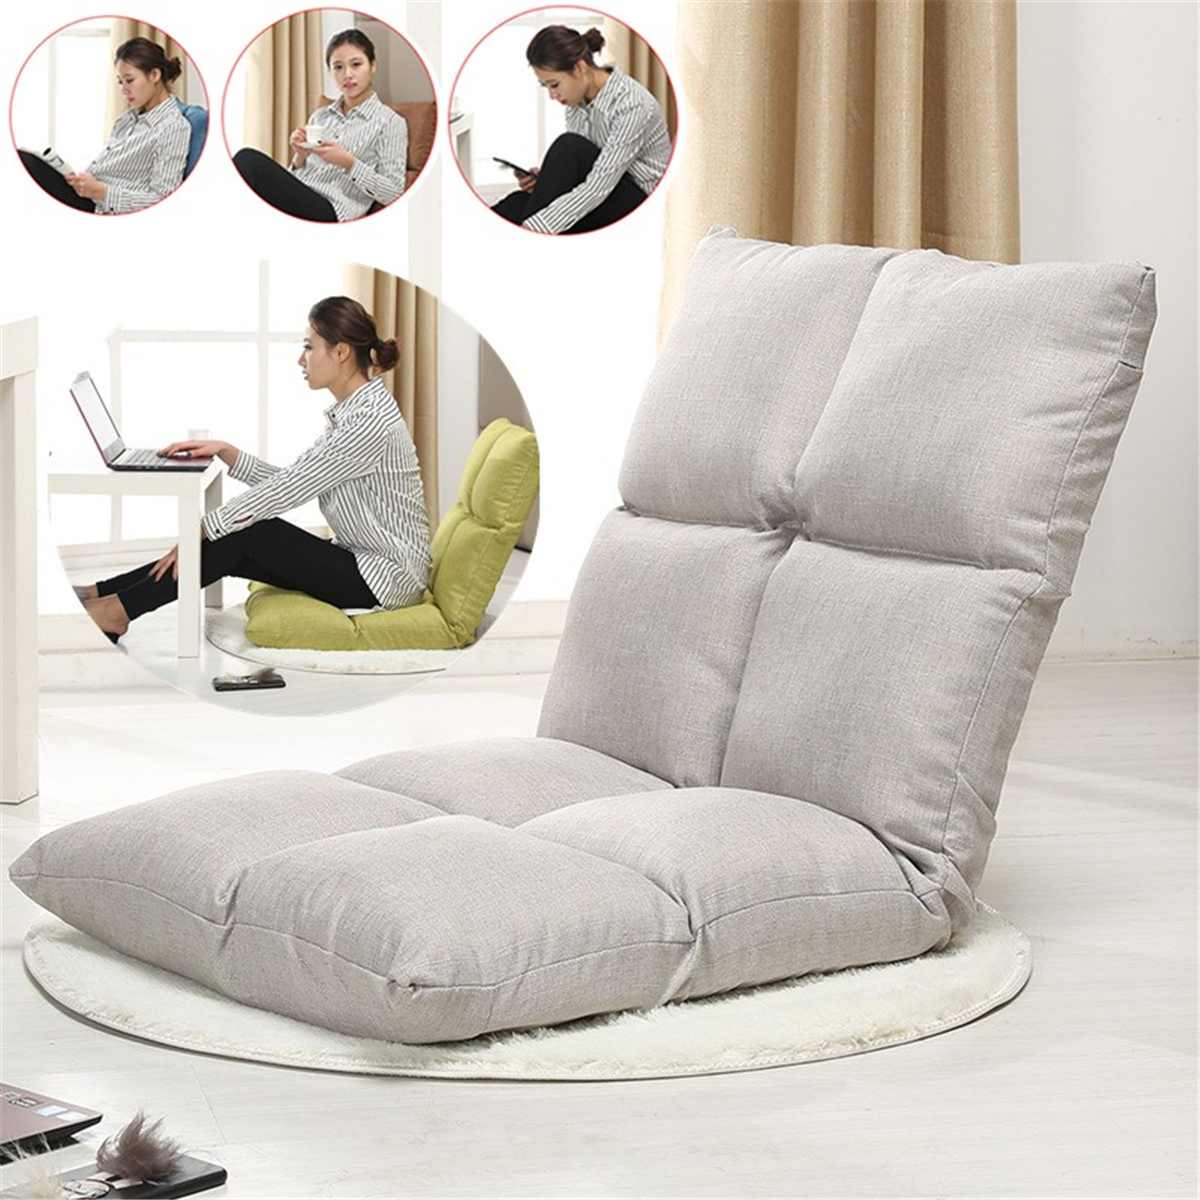 Large Small Lazy Sofa Tatami Bed Folding Back Single Bedroom Small Bed Room Balcony Net Red Chair Pouf Puff Couch image